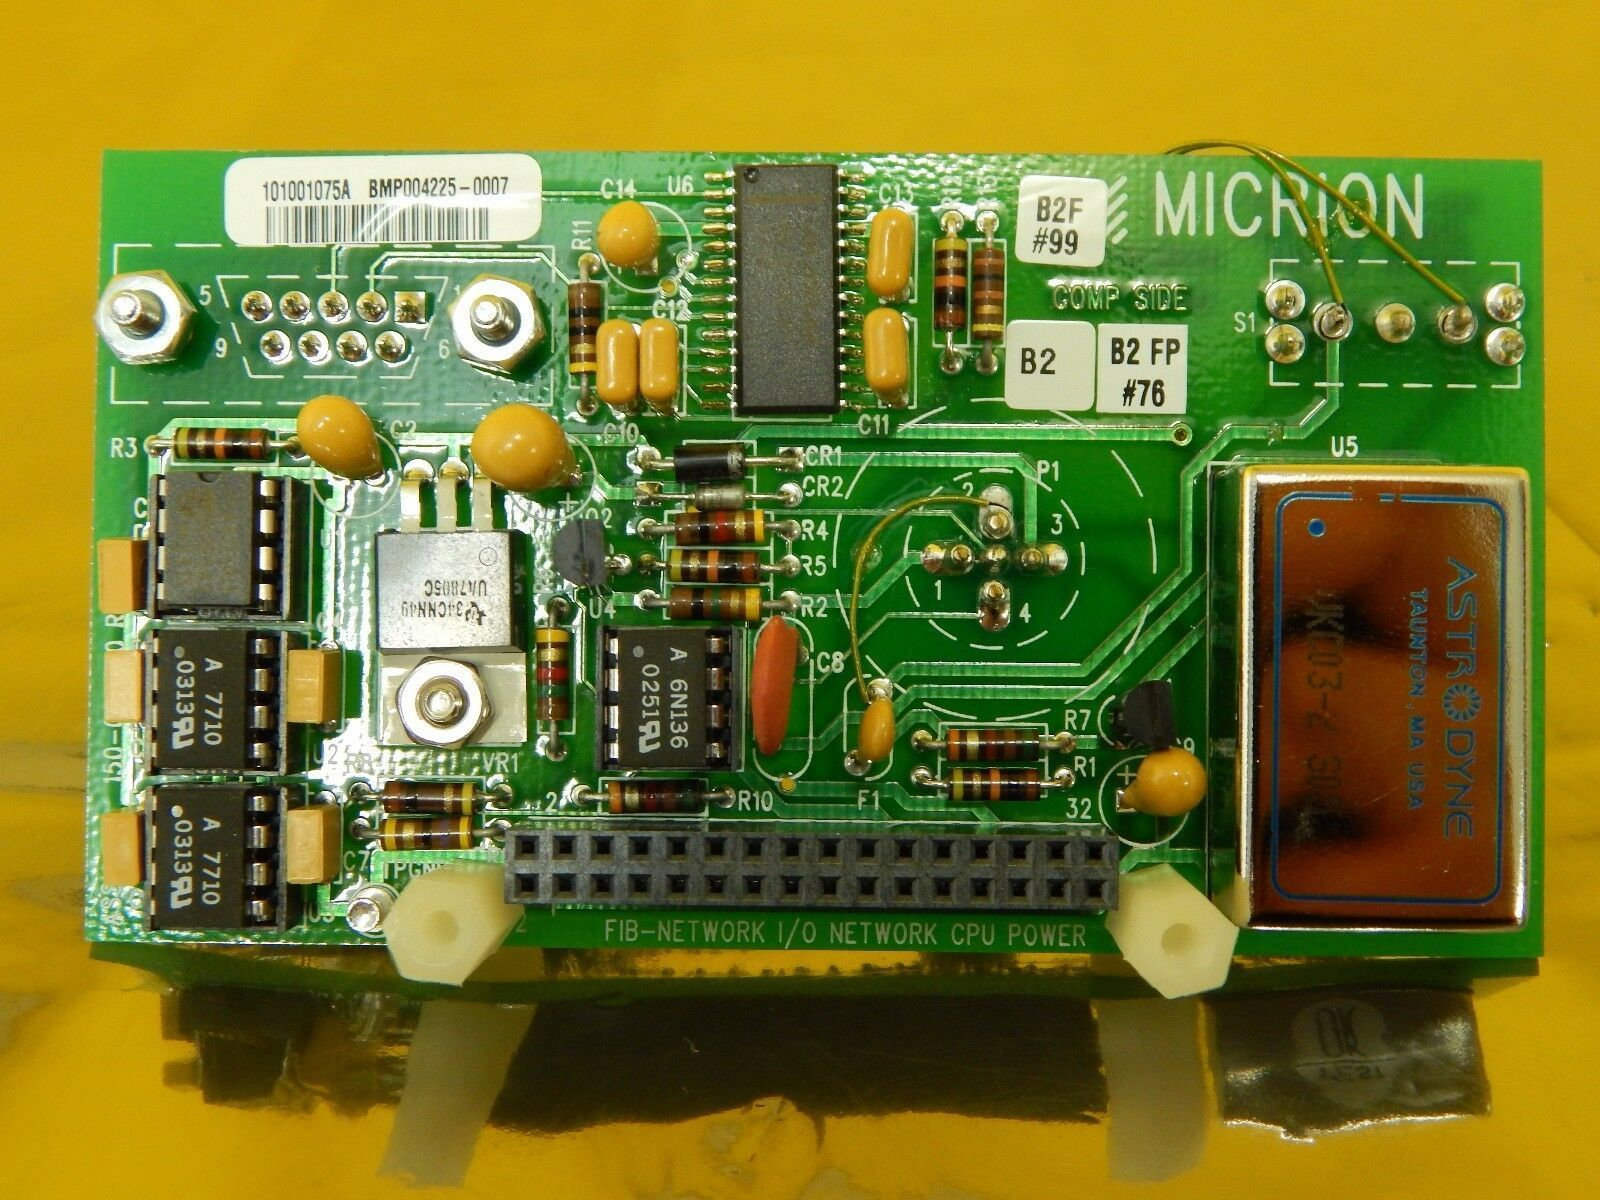 Micrion 150-002300 FIB-NETWORK I/O Network CPU Power Board FEI CLM-3D Used